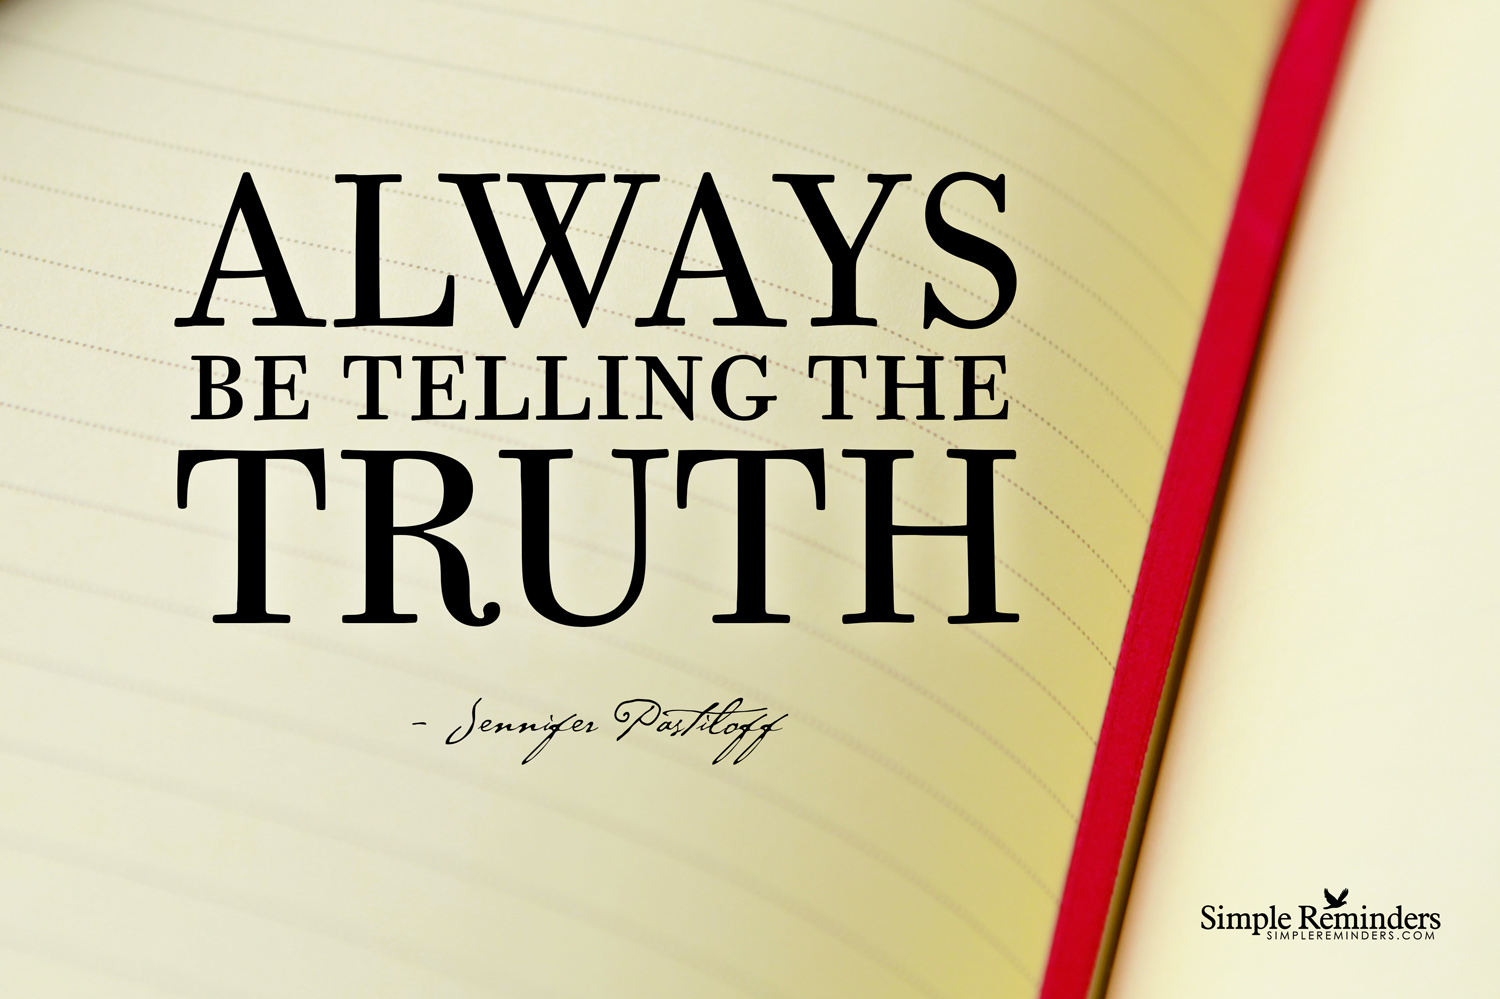 On Telling the Truth.